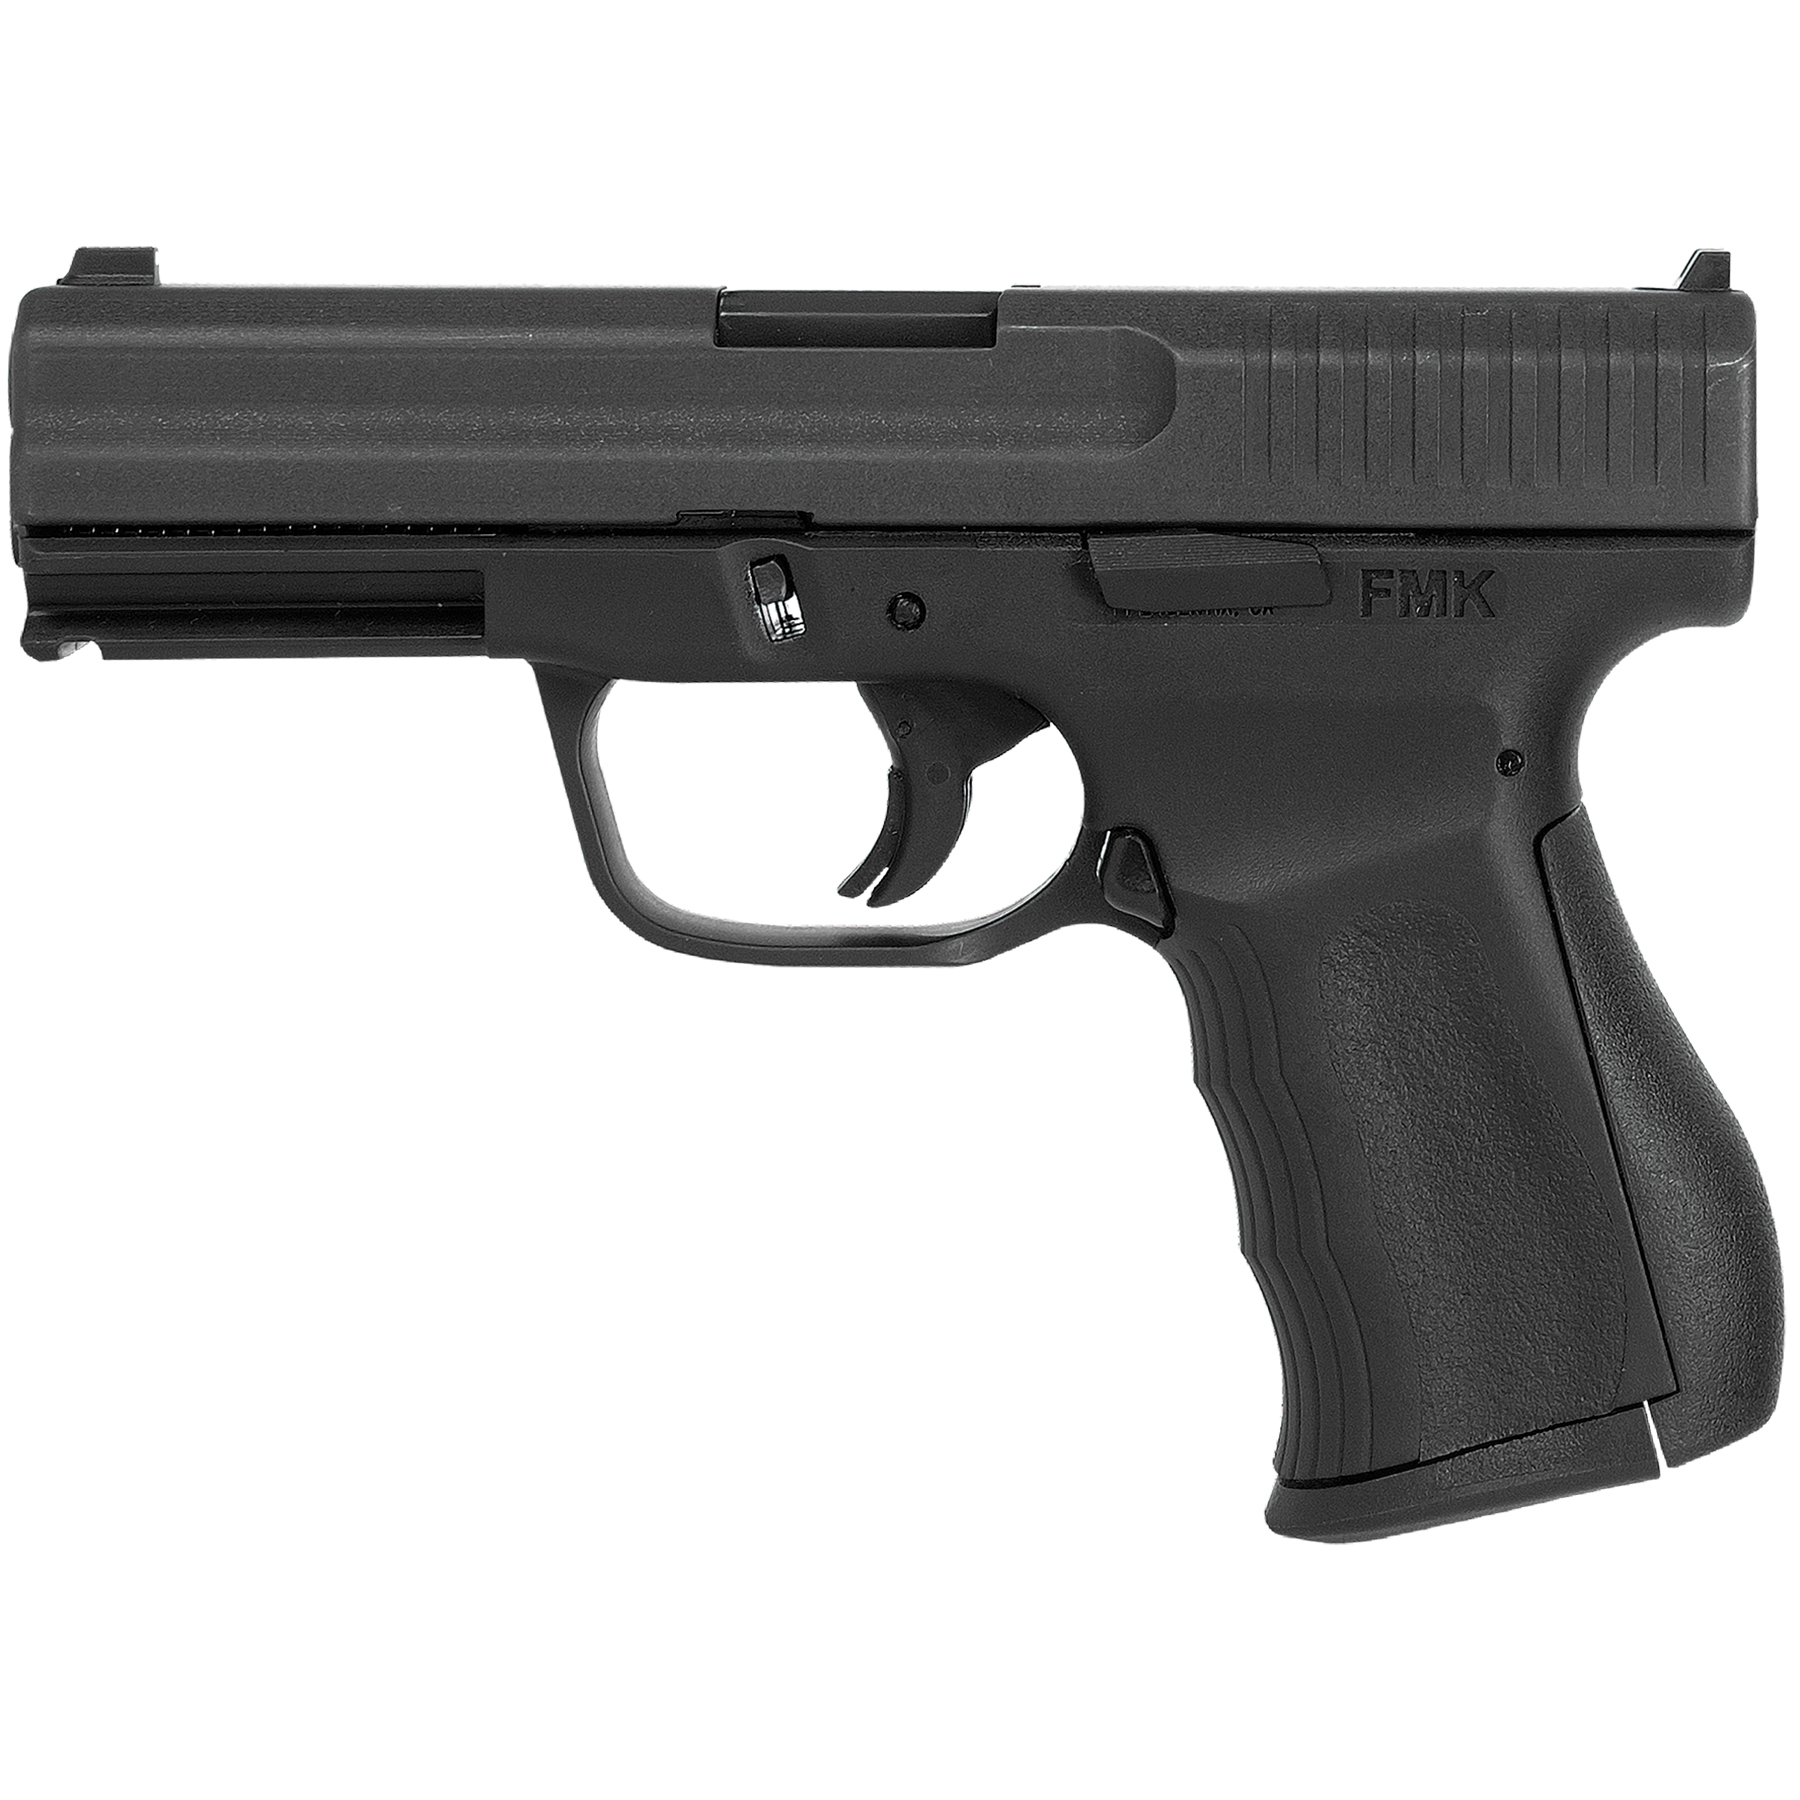 FMK Firearms 9C1 G2 Compact Handgun, 9MM Luger, Black, 14 Rd.